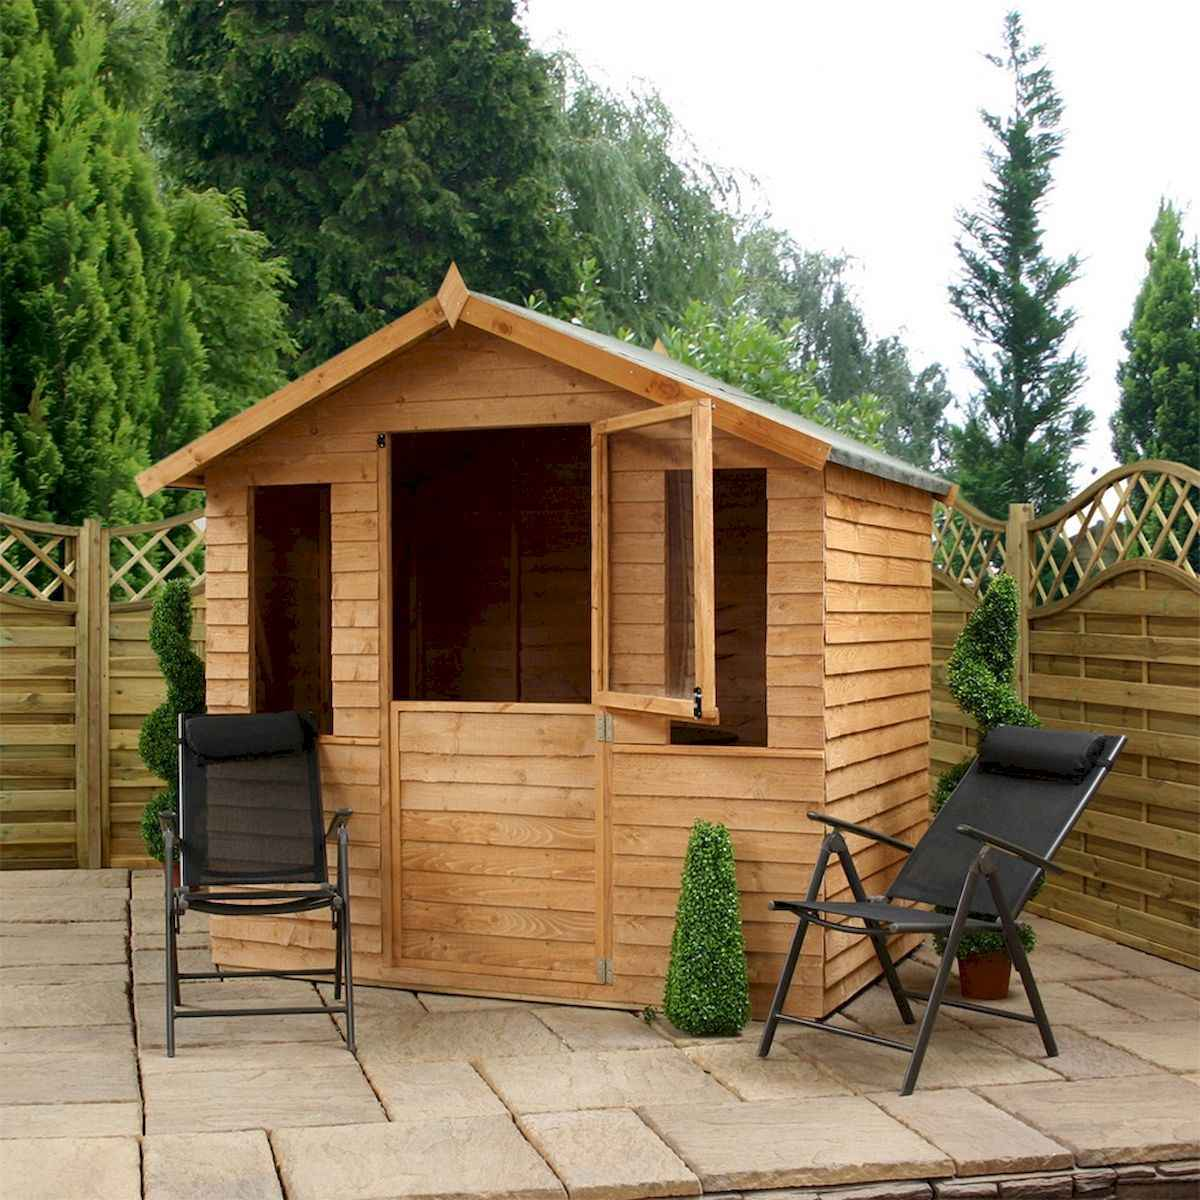 90 beautiful summer house design ideas and makeover make your summer awesome (4)